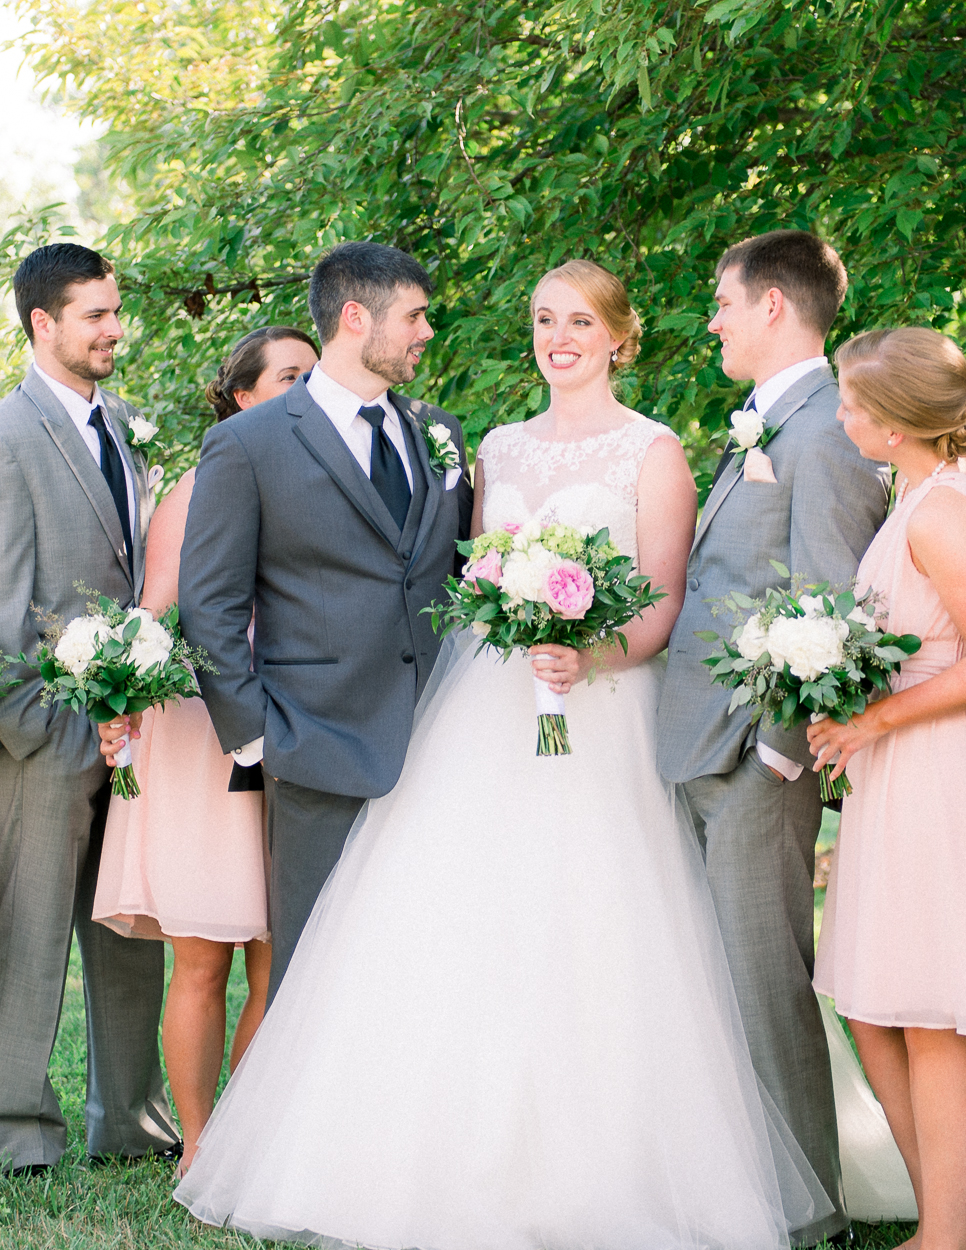 virginiawedding_vineyardwedding_LostCreekWinery_LeesburgWedding_youseephotography_Siegel (100).JPG